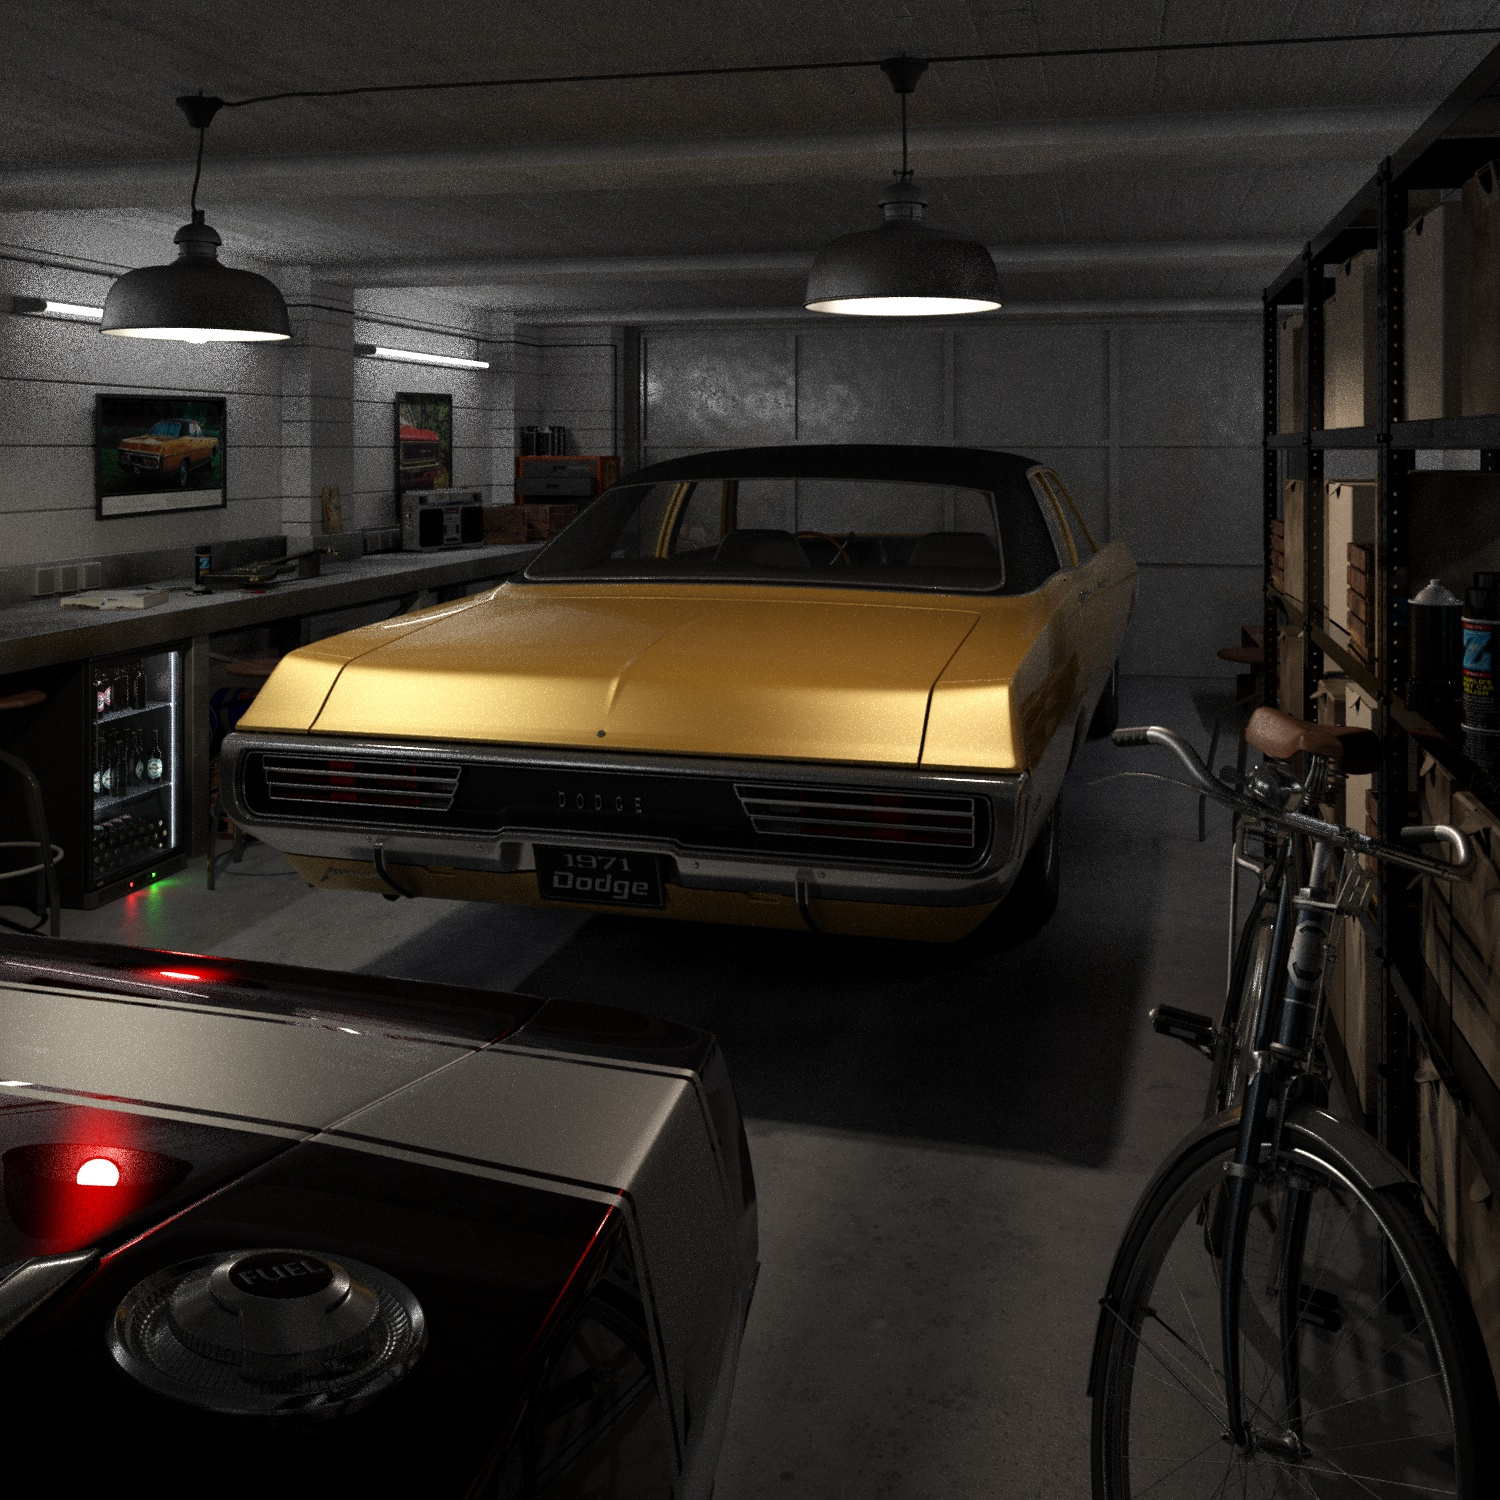 CAR RENDER CHALLENGE - DODGE GARAGE